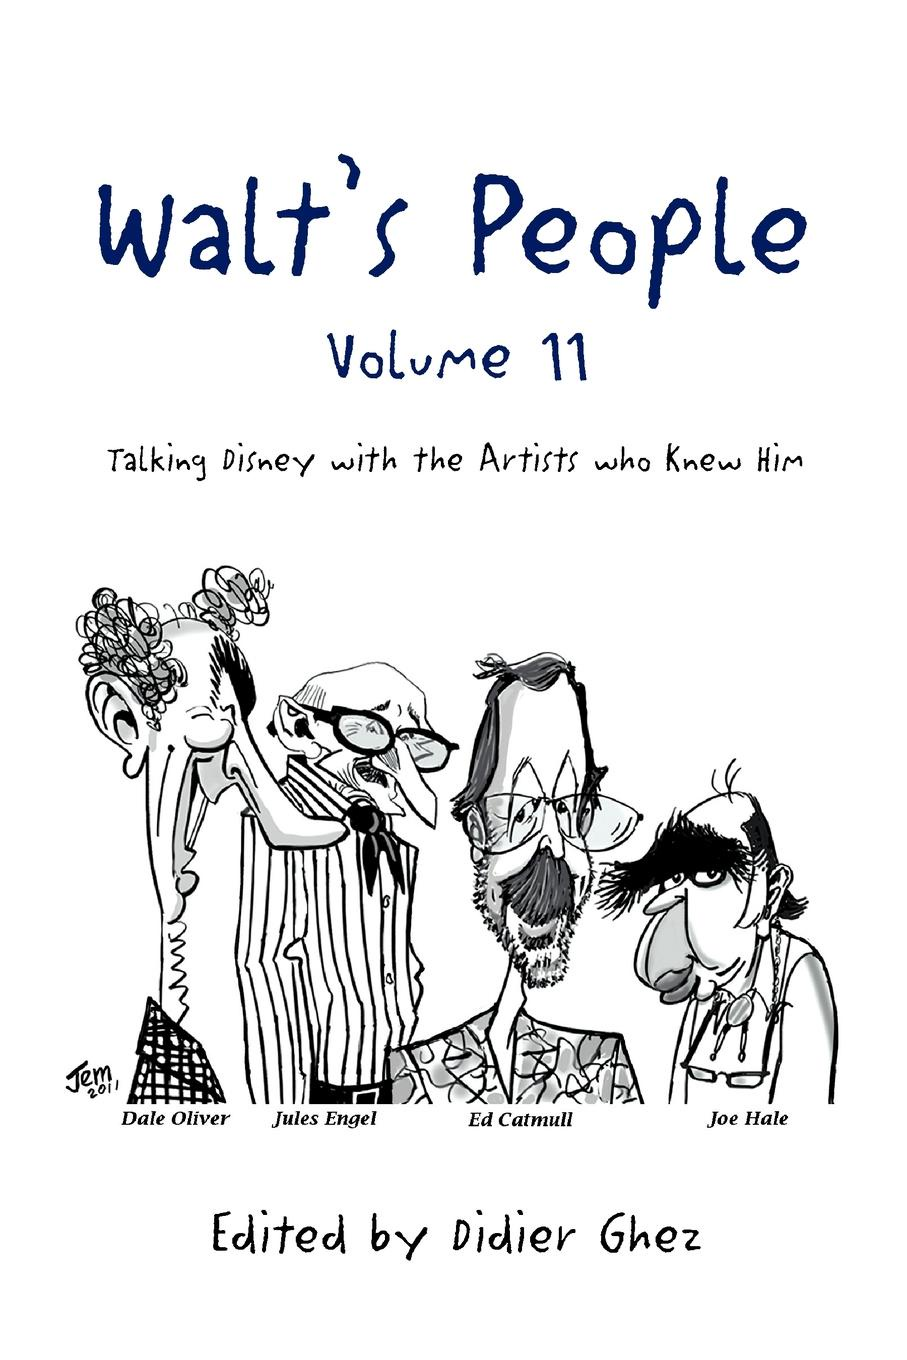 Edited by Didier Ghez Walts People - Volume 11. Talking Disney with the Artists who Knew Him